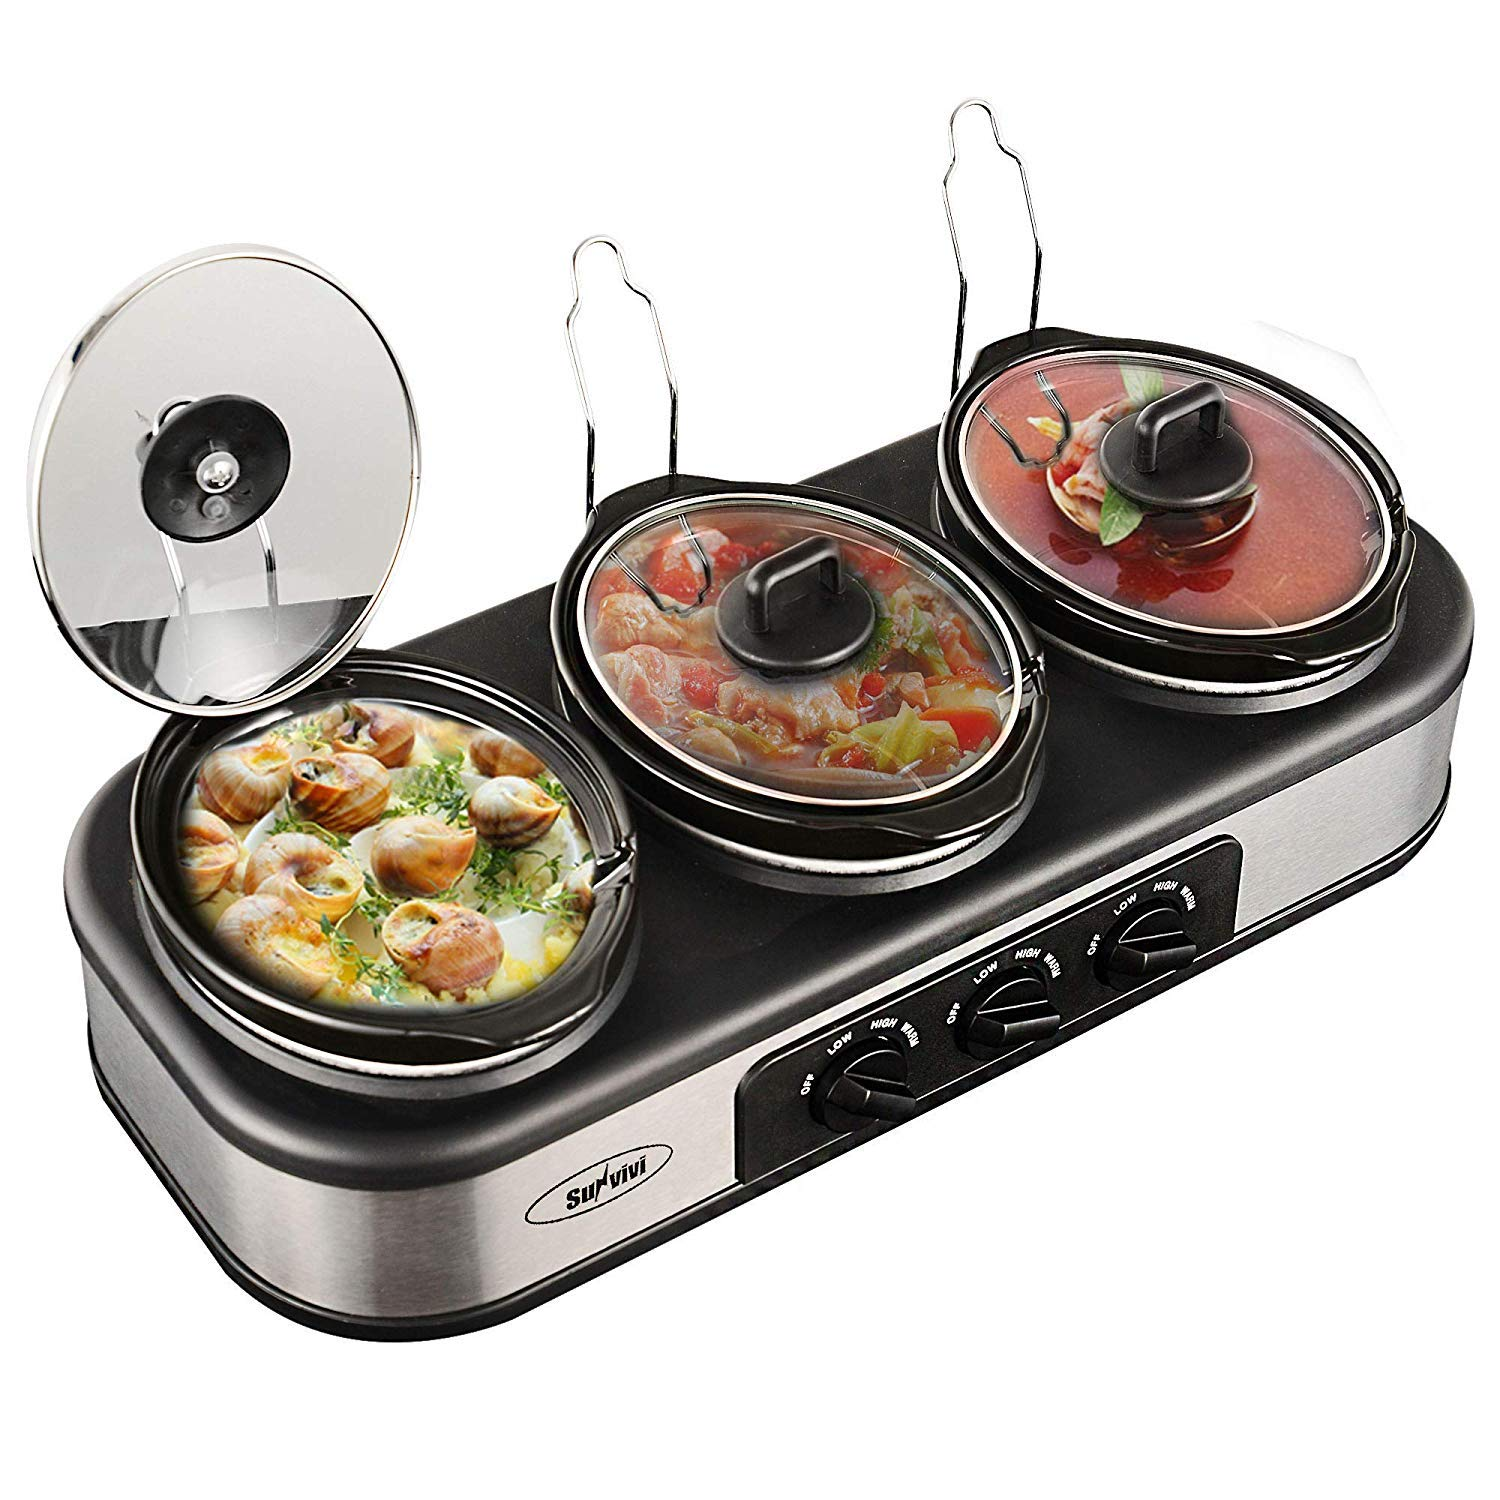 Sunvivi Electric Slow Cooker for Household Use, Food Warming Soup Cooker, Crock Pot Food Warmer for Party Holiday